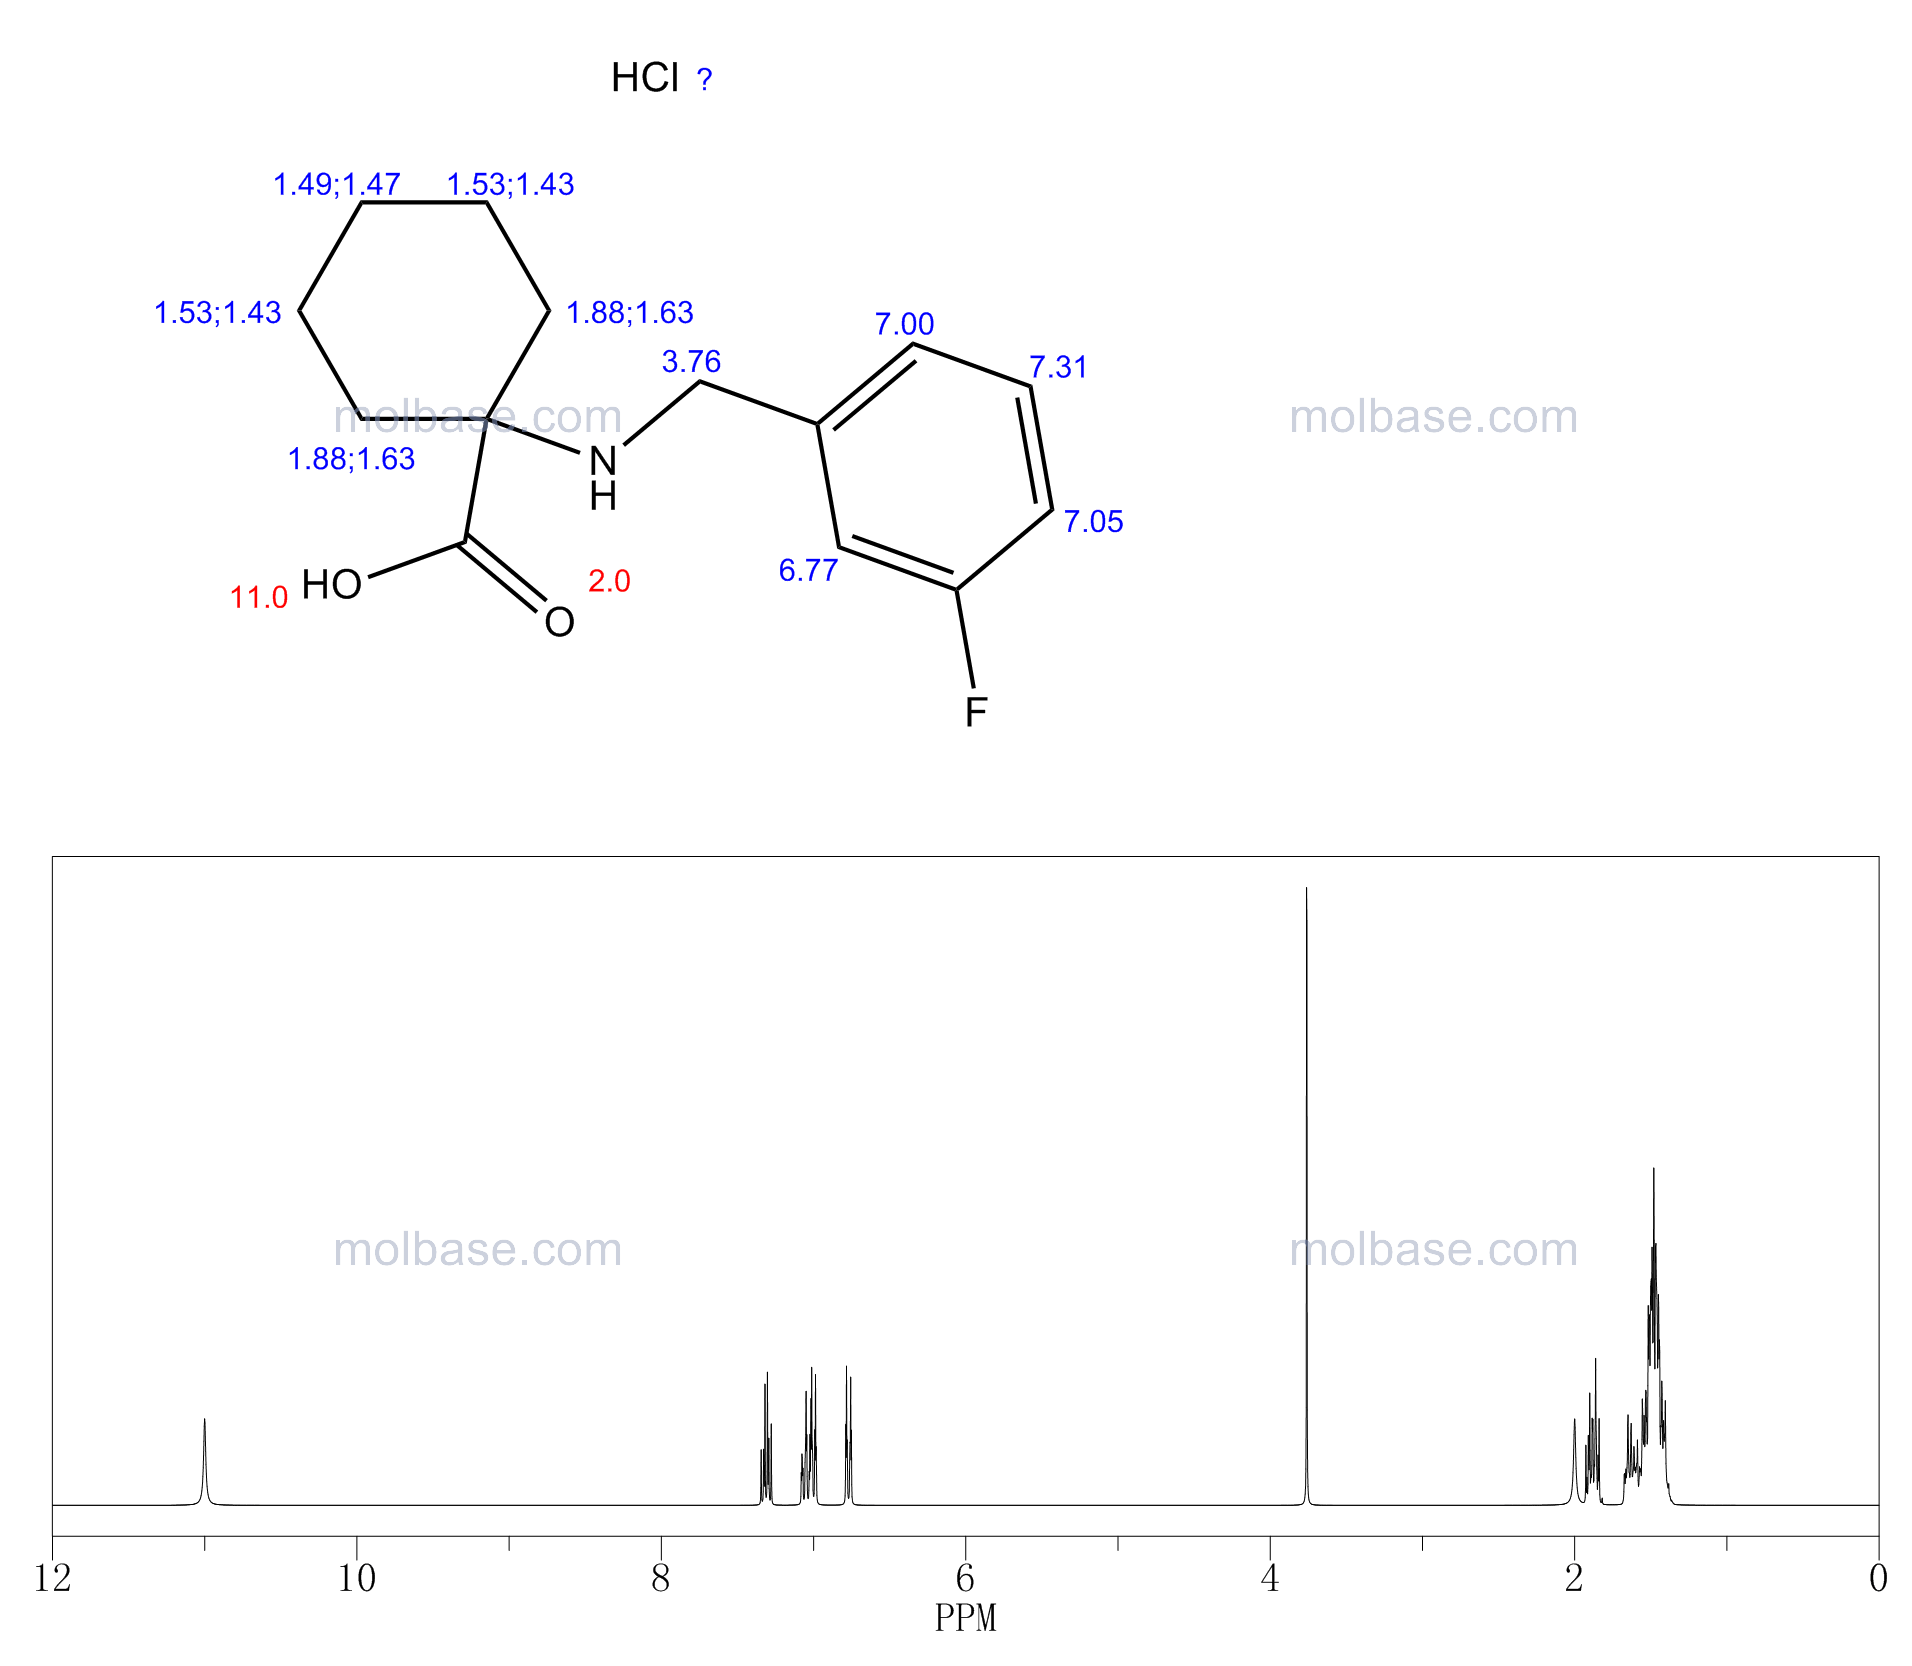 1-[(3-fluorophenyl)methylamino]cyclohexane-1-carboxylic acid NMR spectra analysis, Chemical CAS NO. 939760-97-1 NMR spectral analysis, 1-[(3-fluorophenyl)methylamino]cyclohexane-1-carboxylic acid C-NMR spectrum